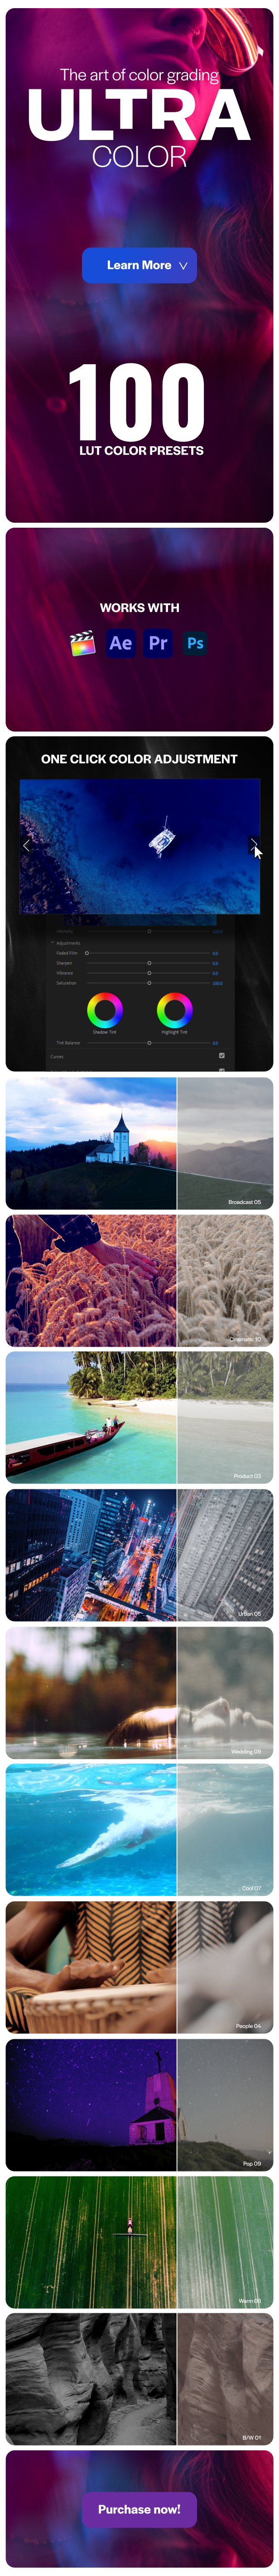 Ultra Color | LUTs pack for Any Software - 1